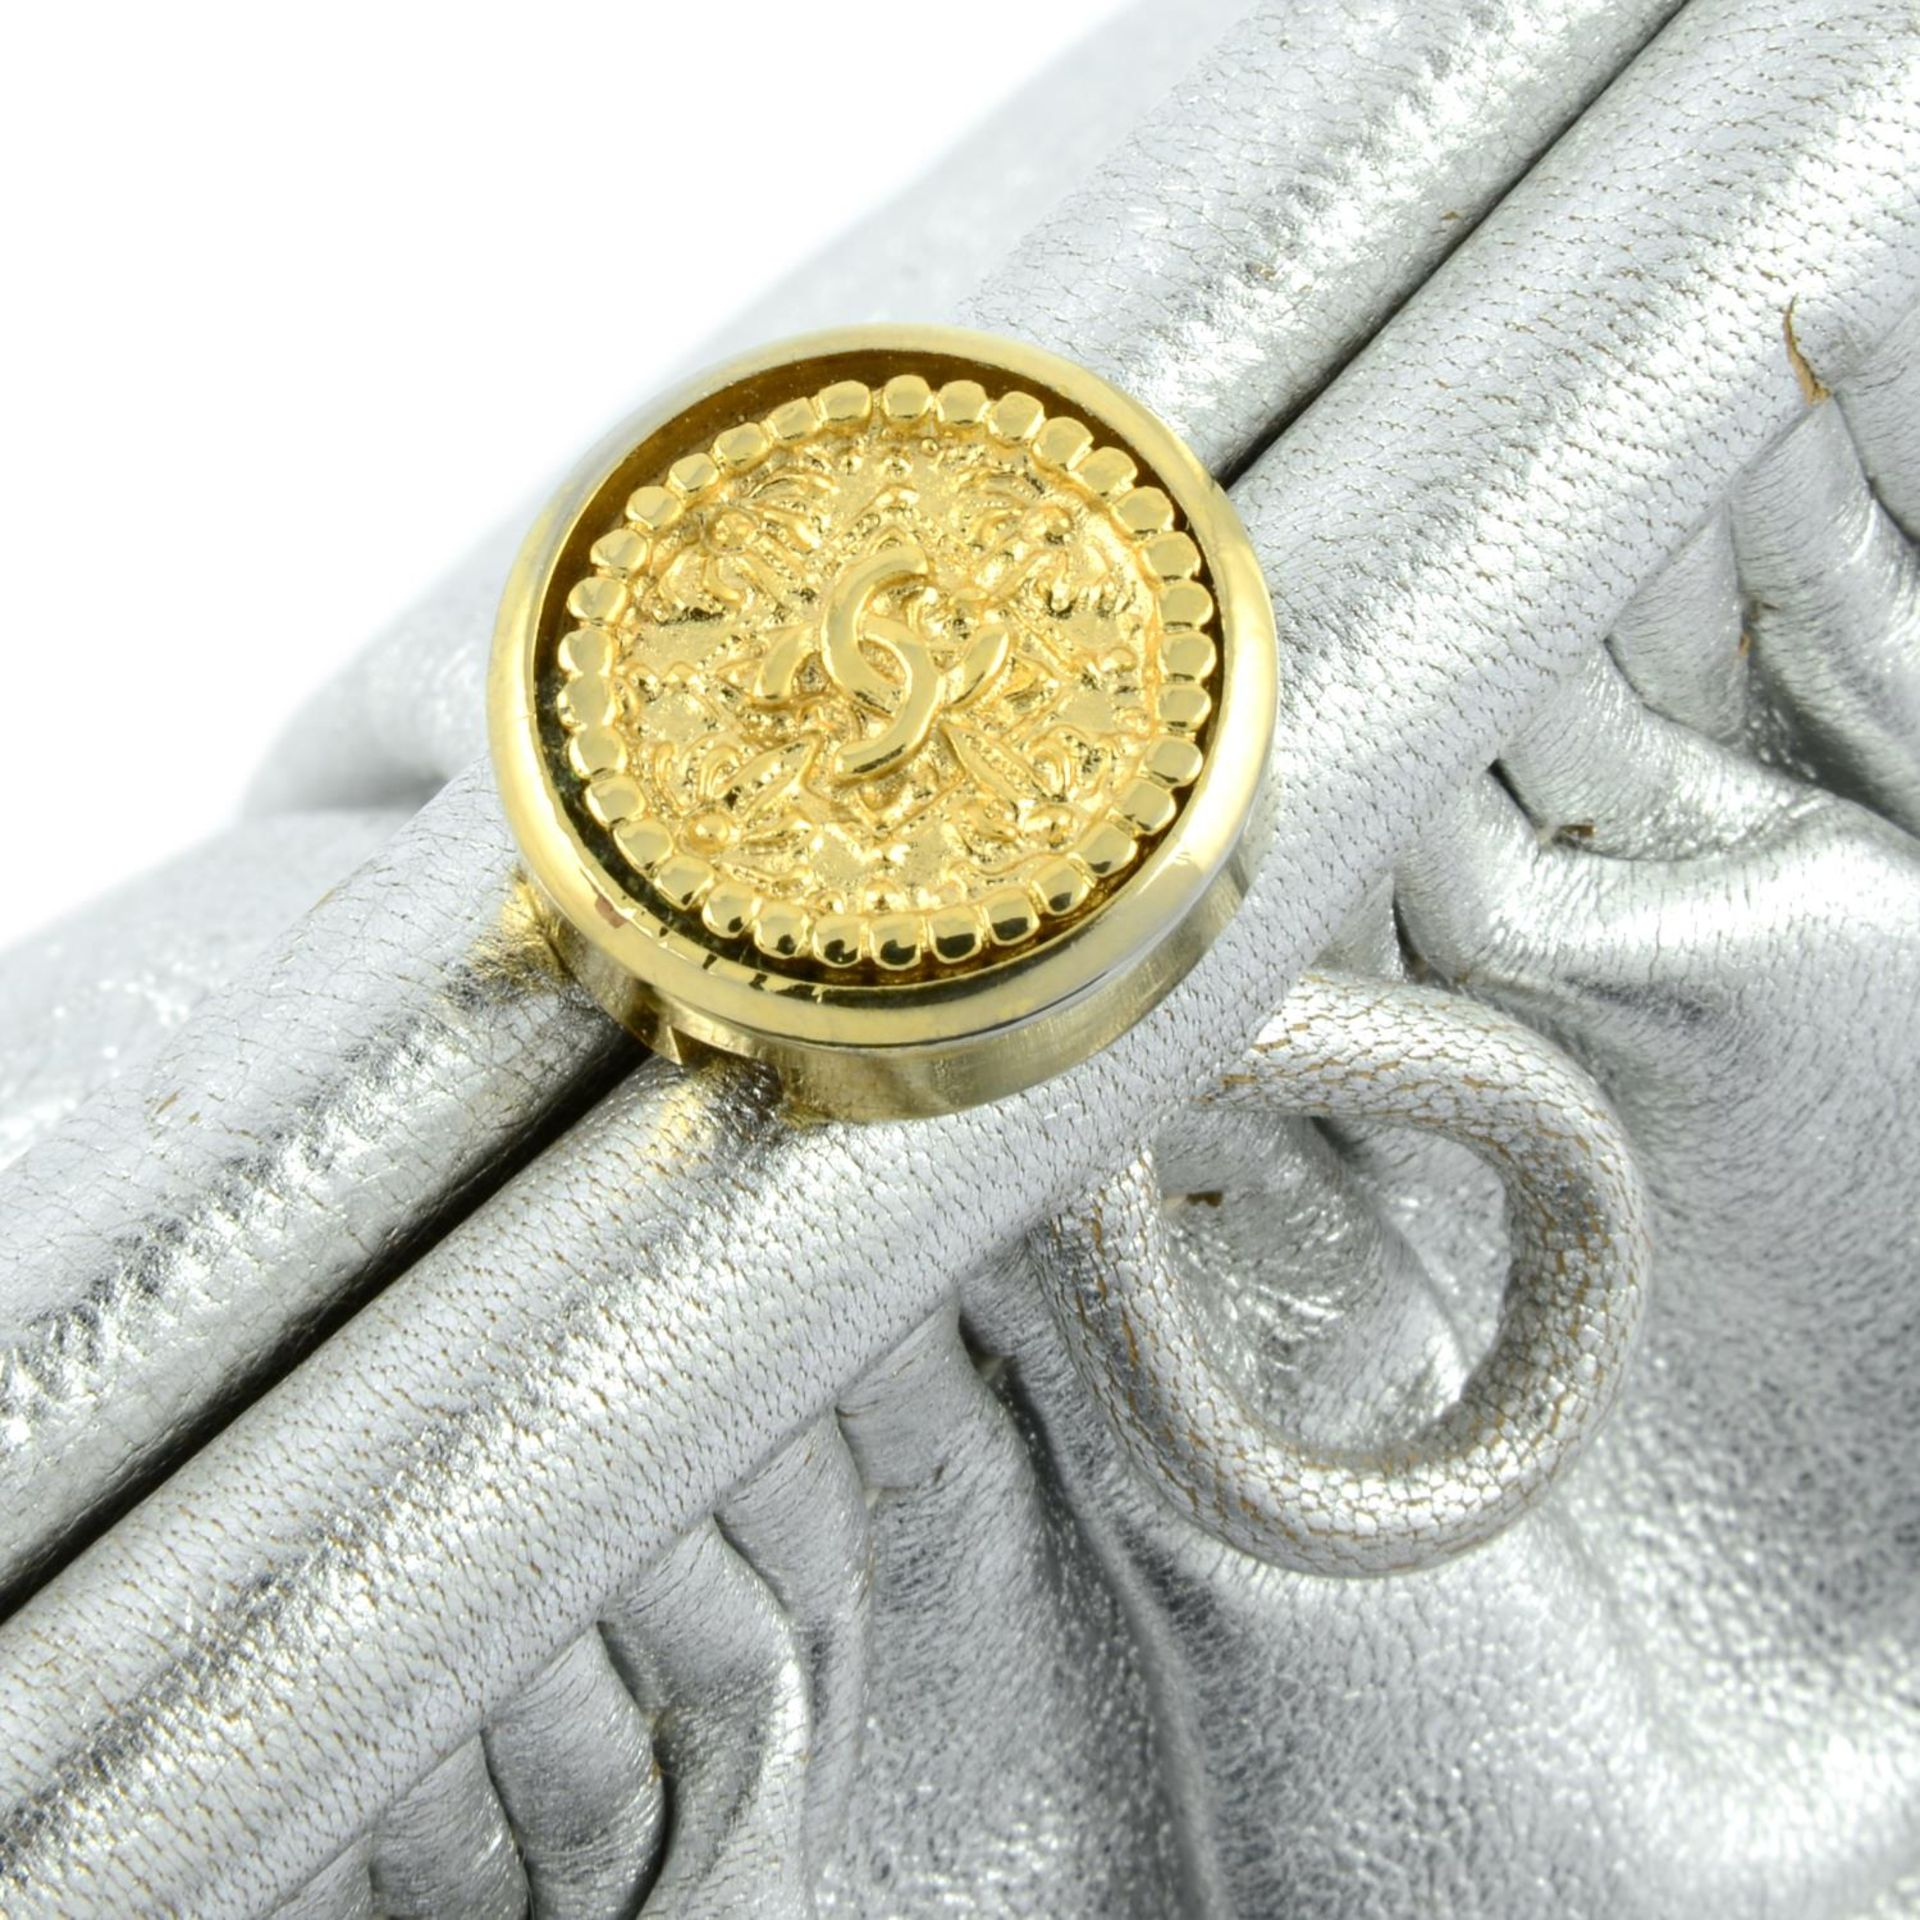 CHANEL - a vintage metallic kiss-lock clutch with chain. - Image 3 of 6